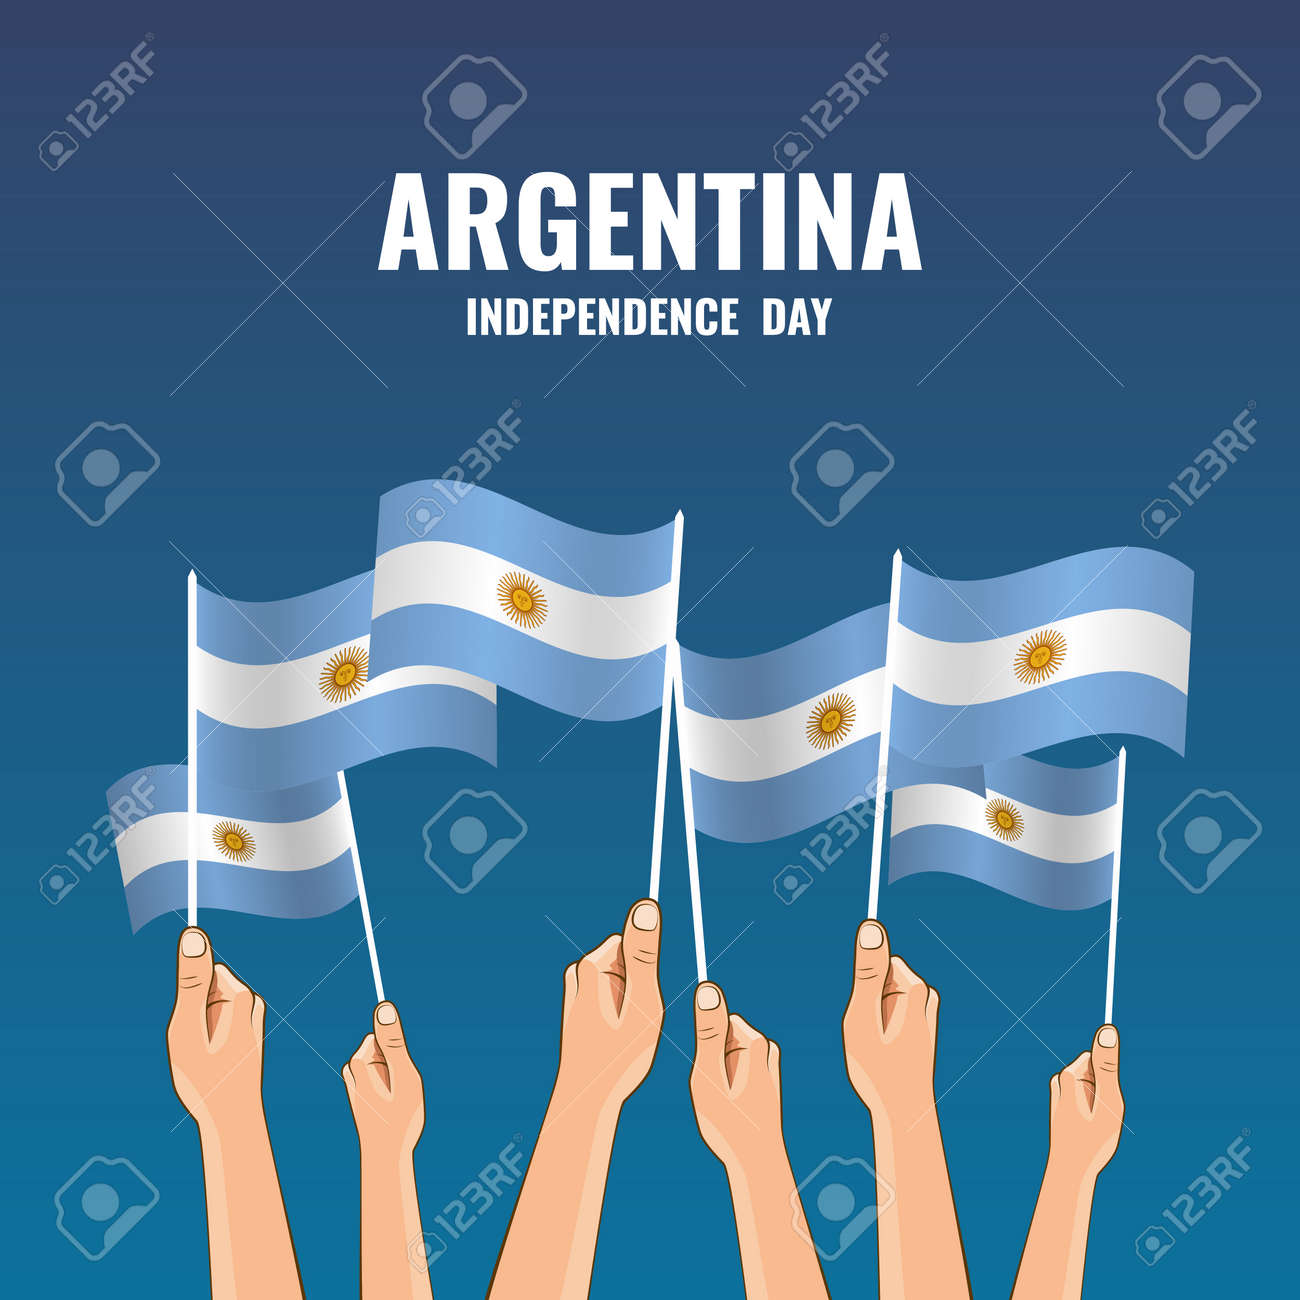 Vector Illustration of Independence Day of Argentina. Hands with flags of Argentina - 169318182